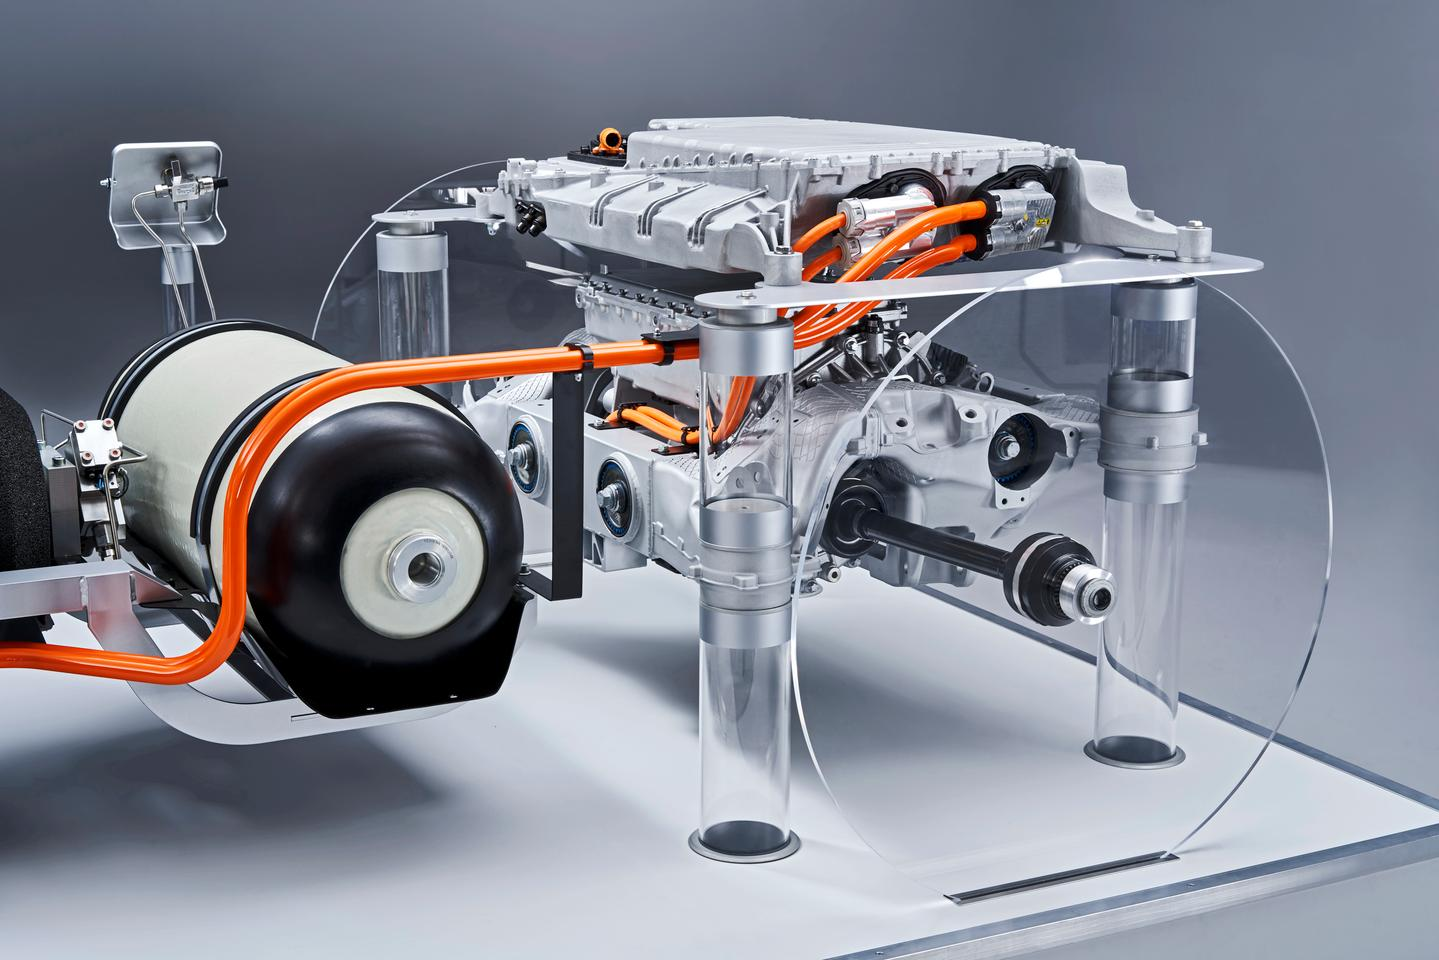 The i Hydrogen Next powertrain, developed by BMW in conjunction with Toyota